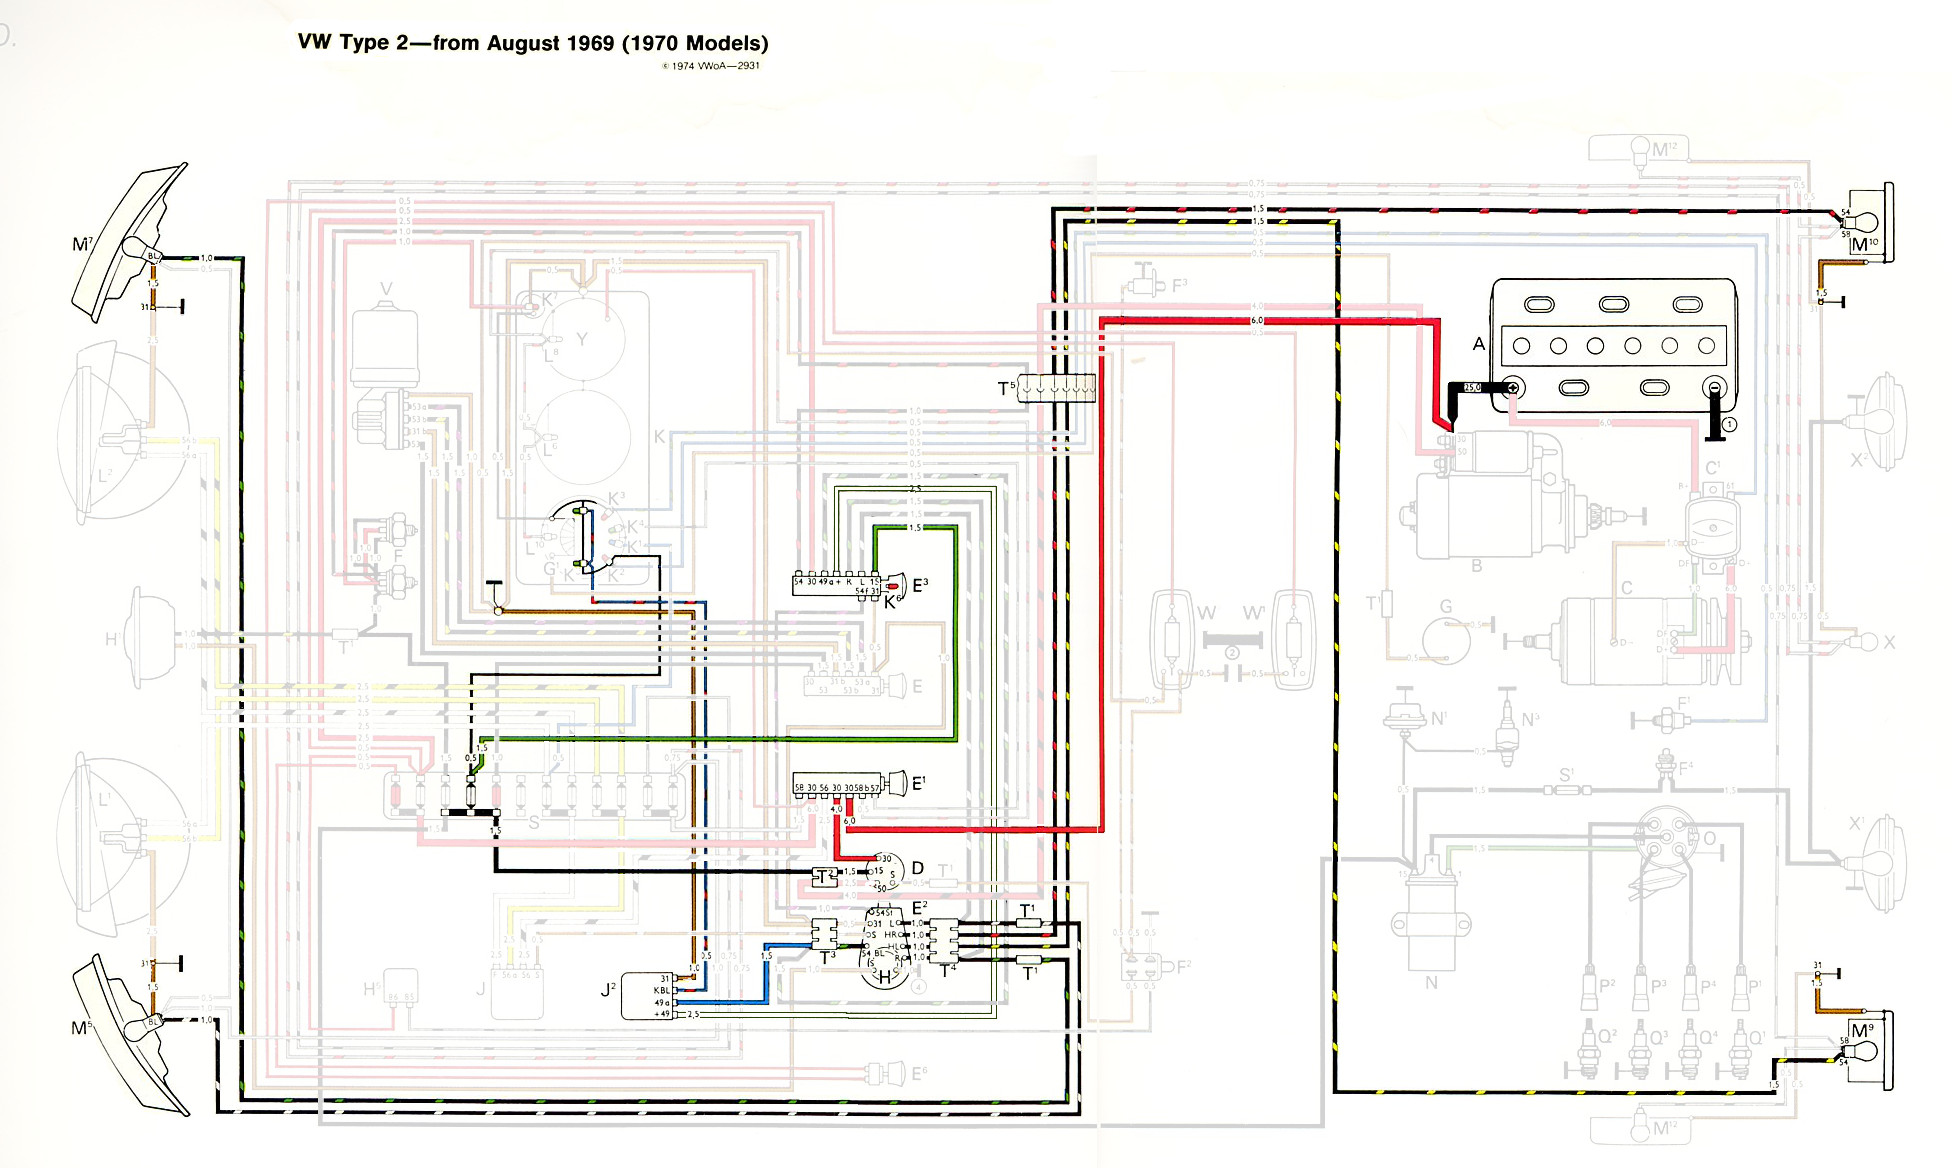 1970bus_signals 1970 vw beetle wiring diagram 1967 vw beetle wiring diagram Wiring Harness Diagram at gsmx.co